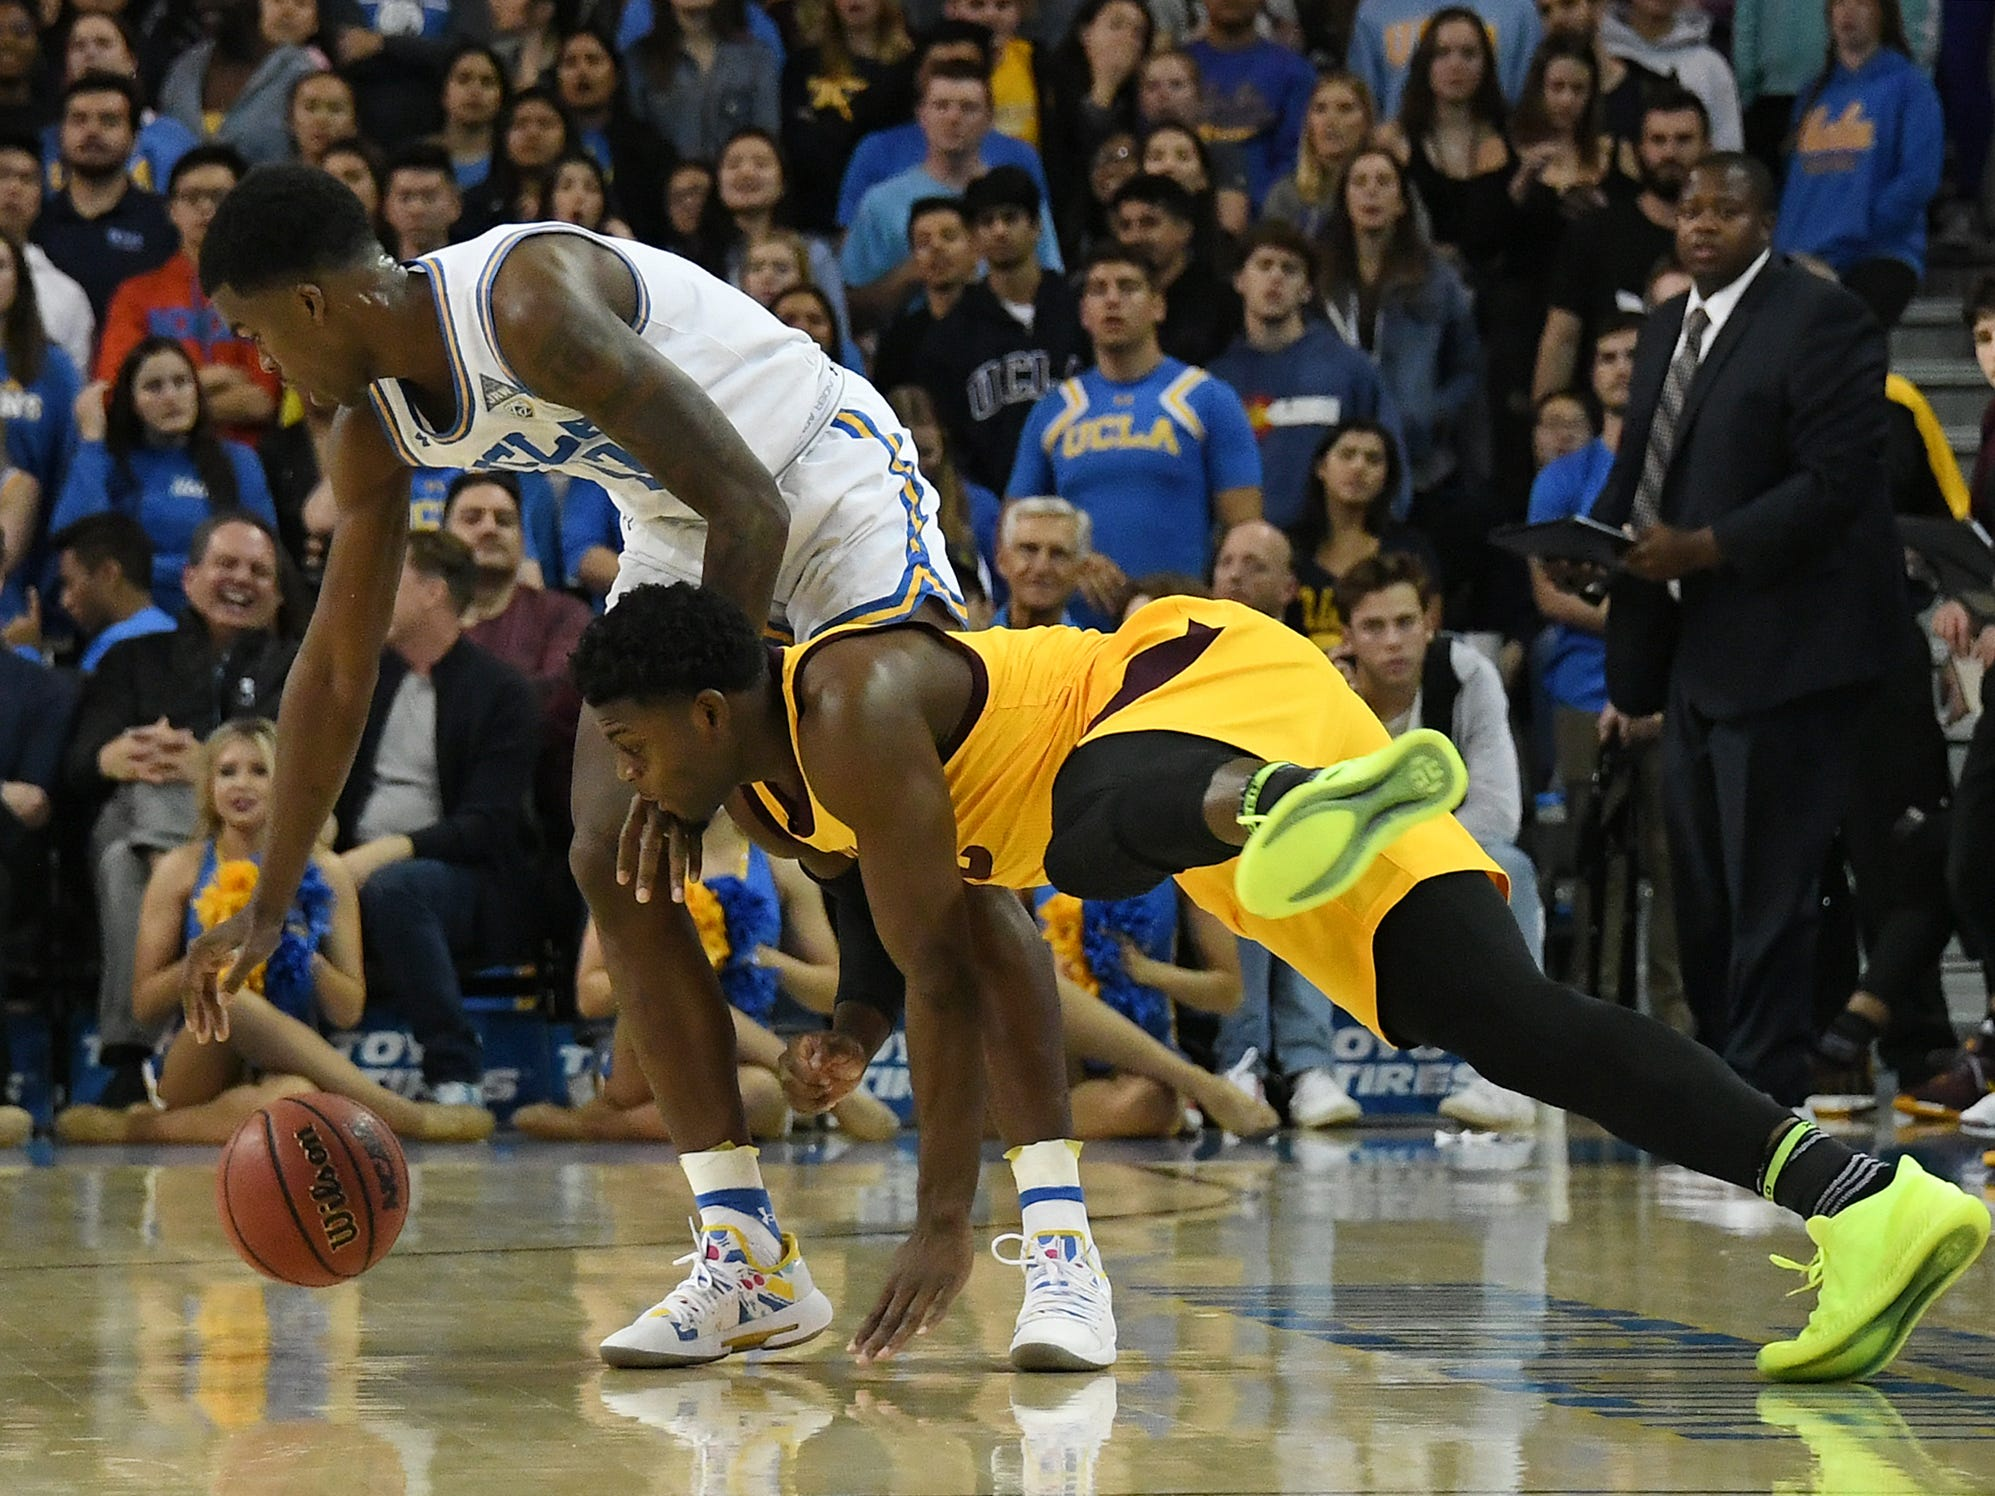 Jan 24, 2019; Los Angeles, CA, USA; UCLA Bruins guard Kris Wilkes (13) and Arizona State Sun Devils guard Luguentz Dort (0) chase a loose ball during the first half at Pauley Pavilion. Mandatory Credit: Richard Mackson-USA TODAY Sports